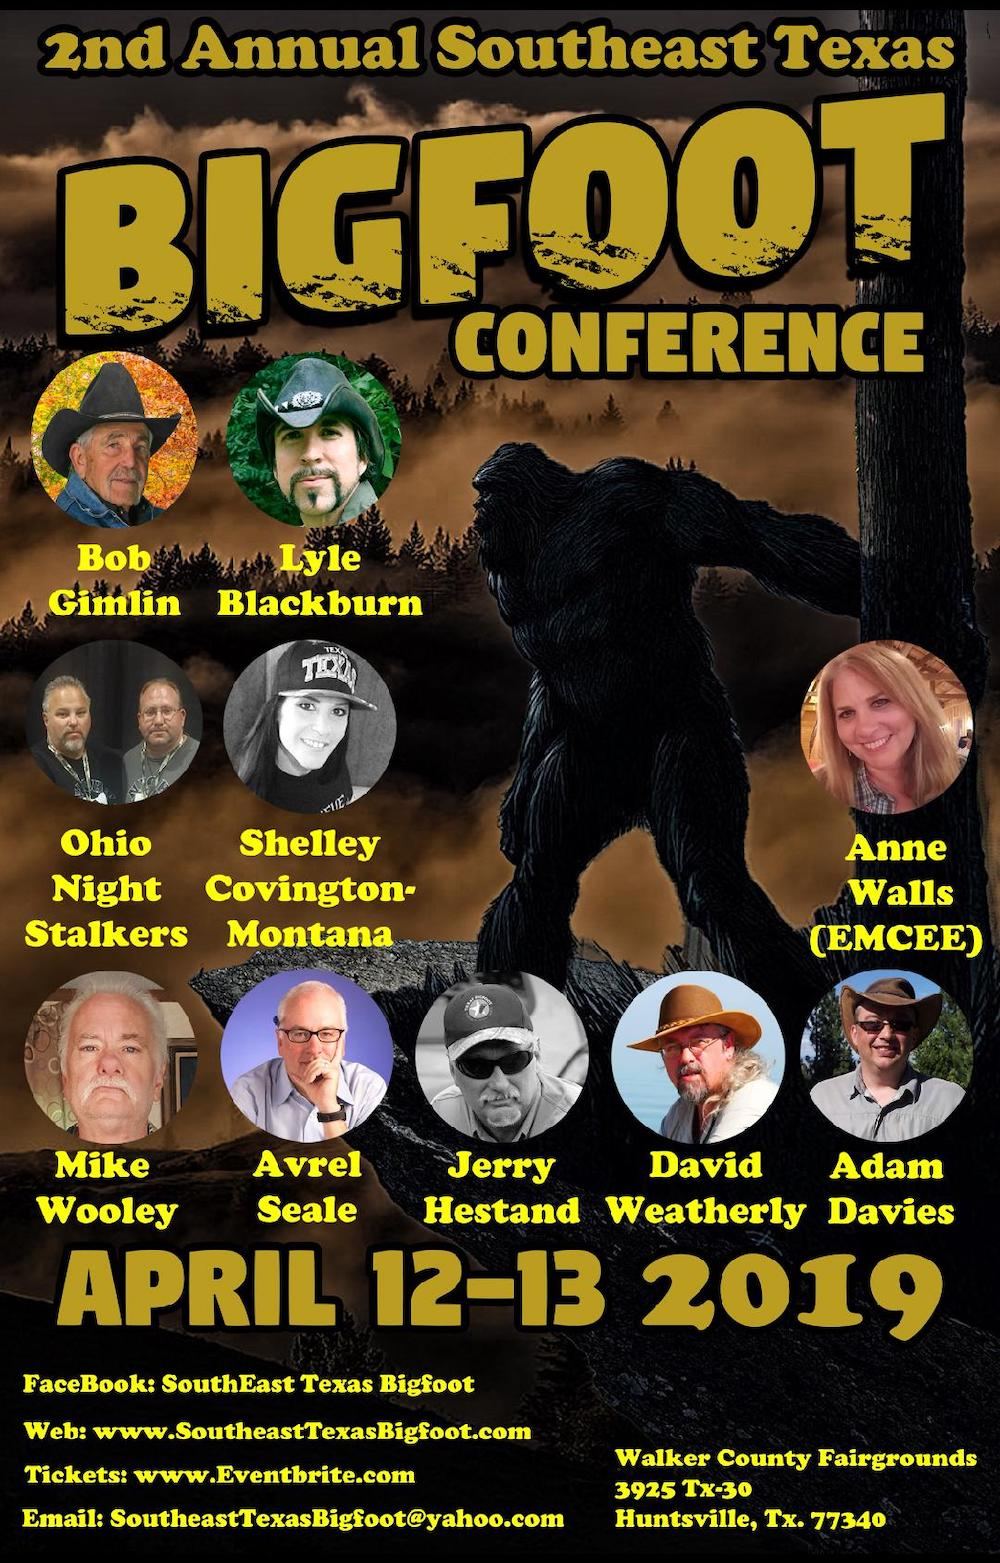 Walker County Fairgrounds Halloween 2020 2nd Annual Southeast Texas Bigfoot Conference at Walker County